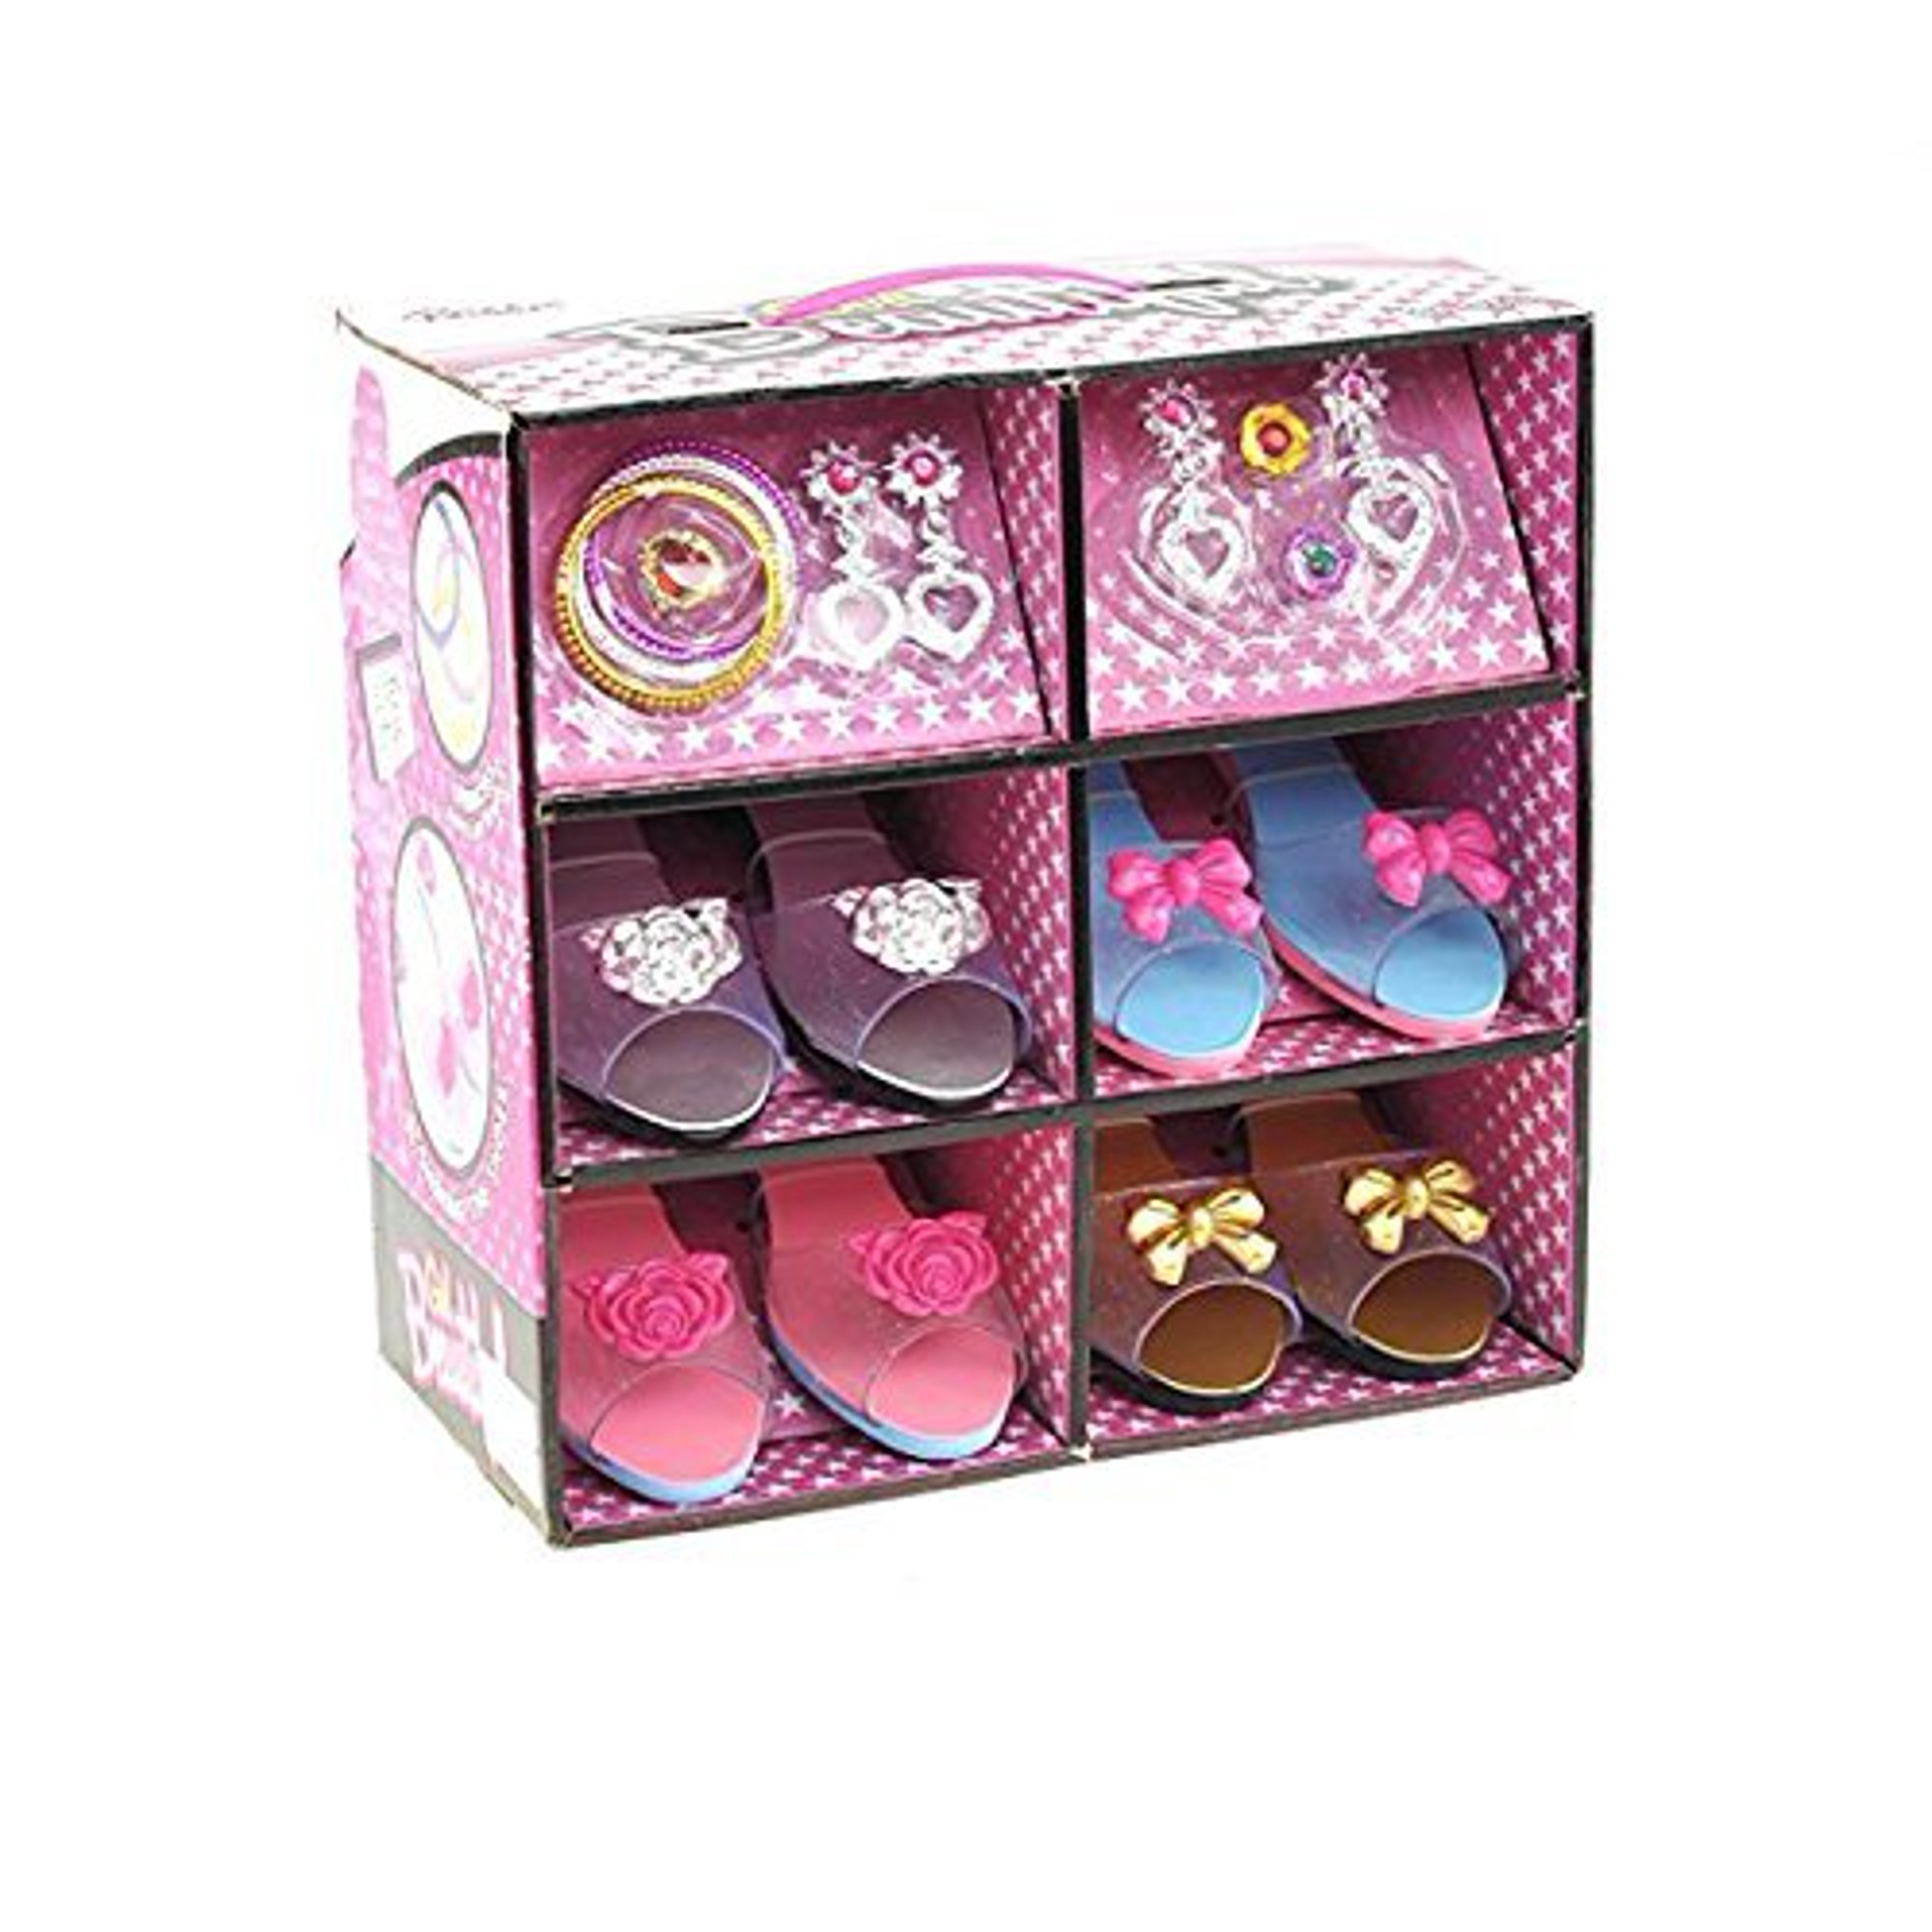 432d8c30ed6 ToyVelt Princess Dress Up Play Shoe and Jewelry Boutique (Includes 4 ...